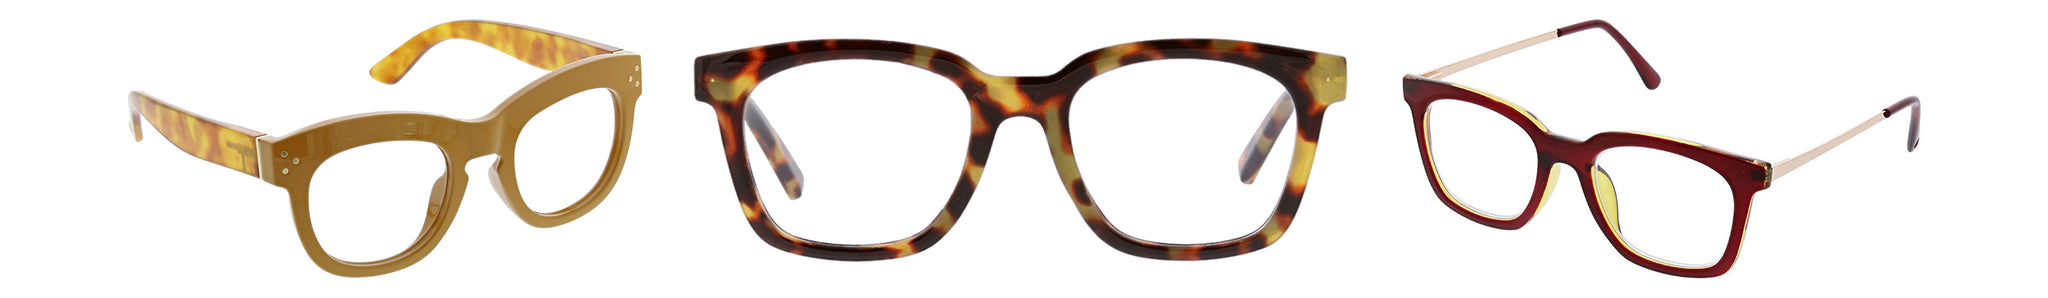 Peepers Bravado, To The Max, and Moderne Metal reading glasses on a white background